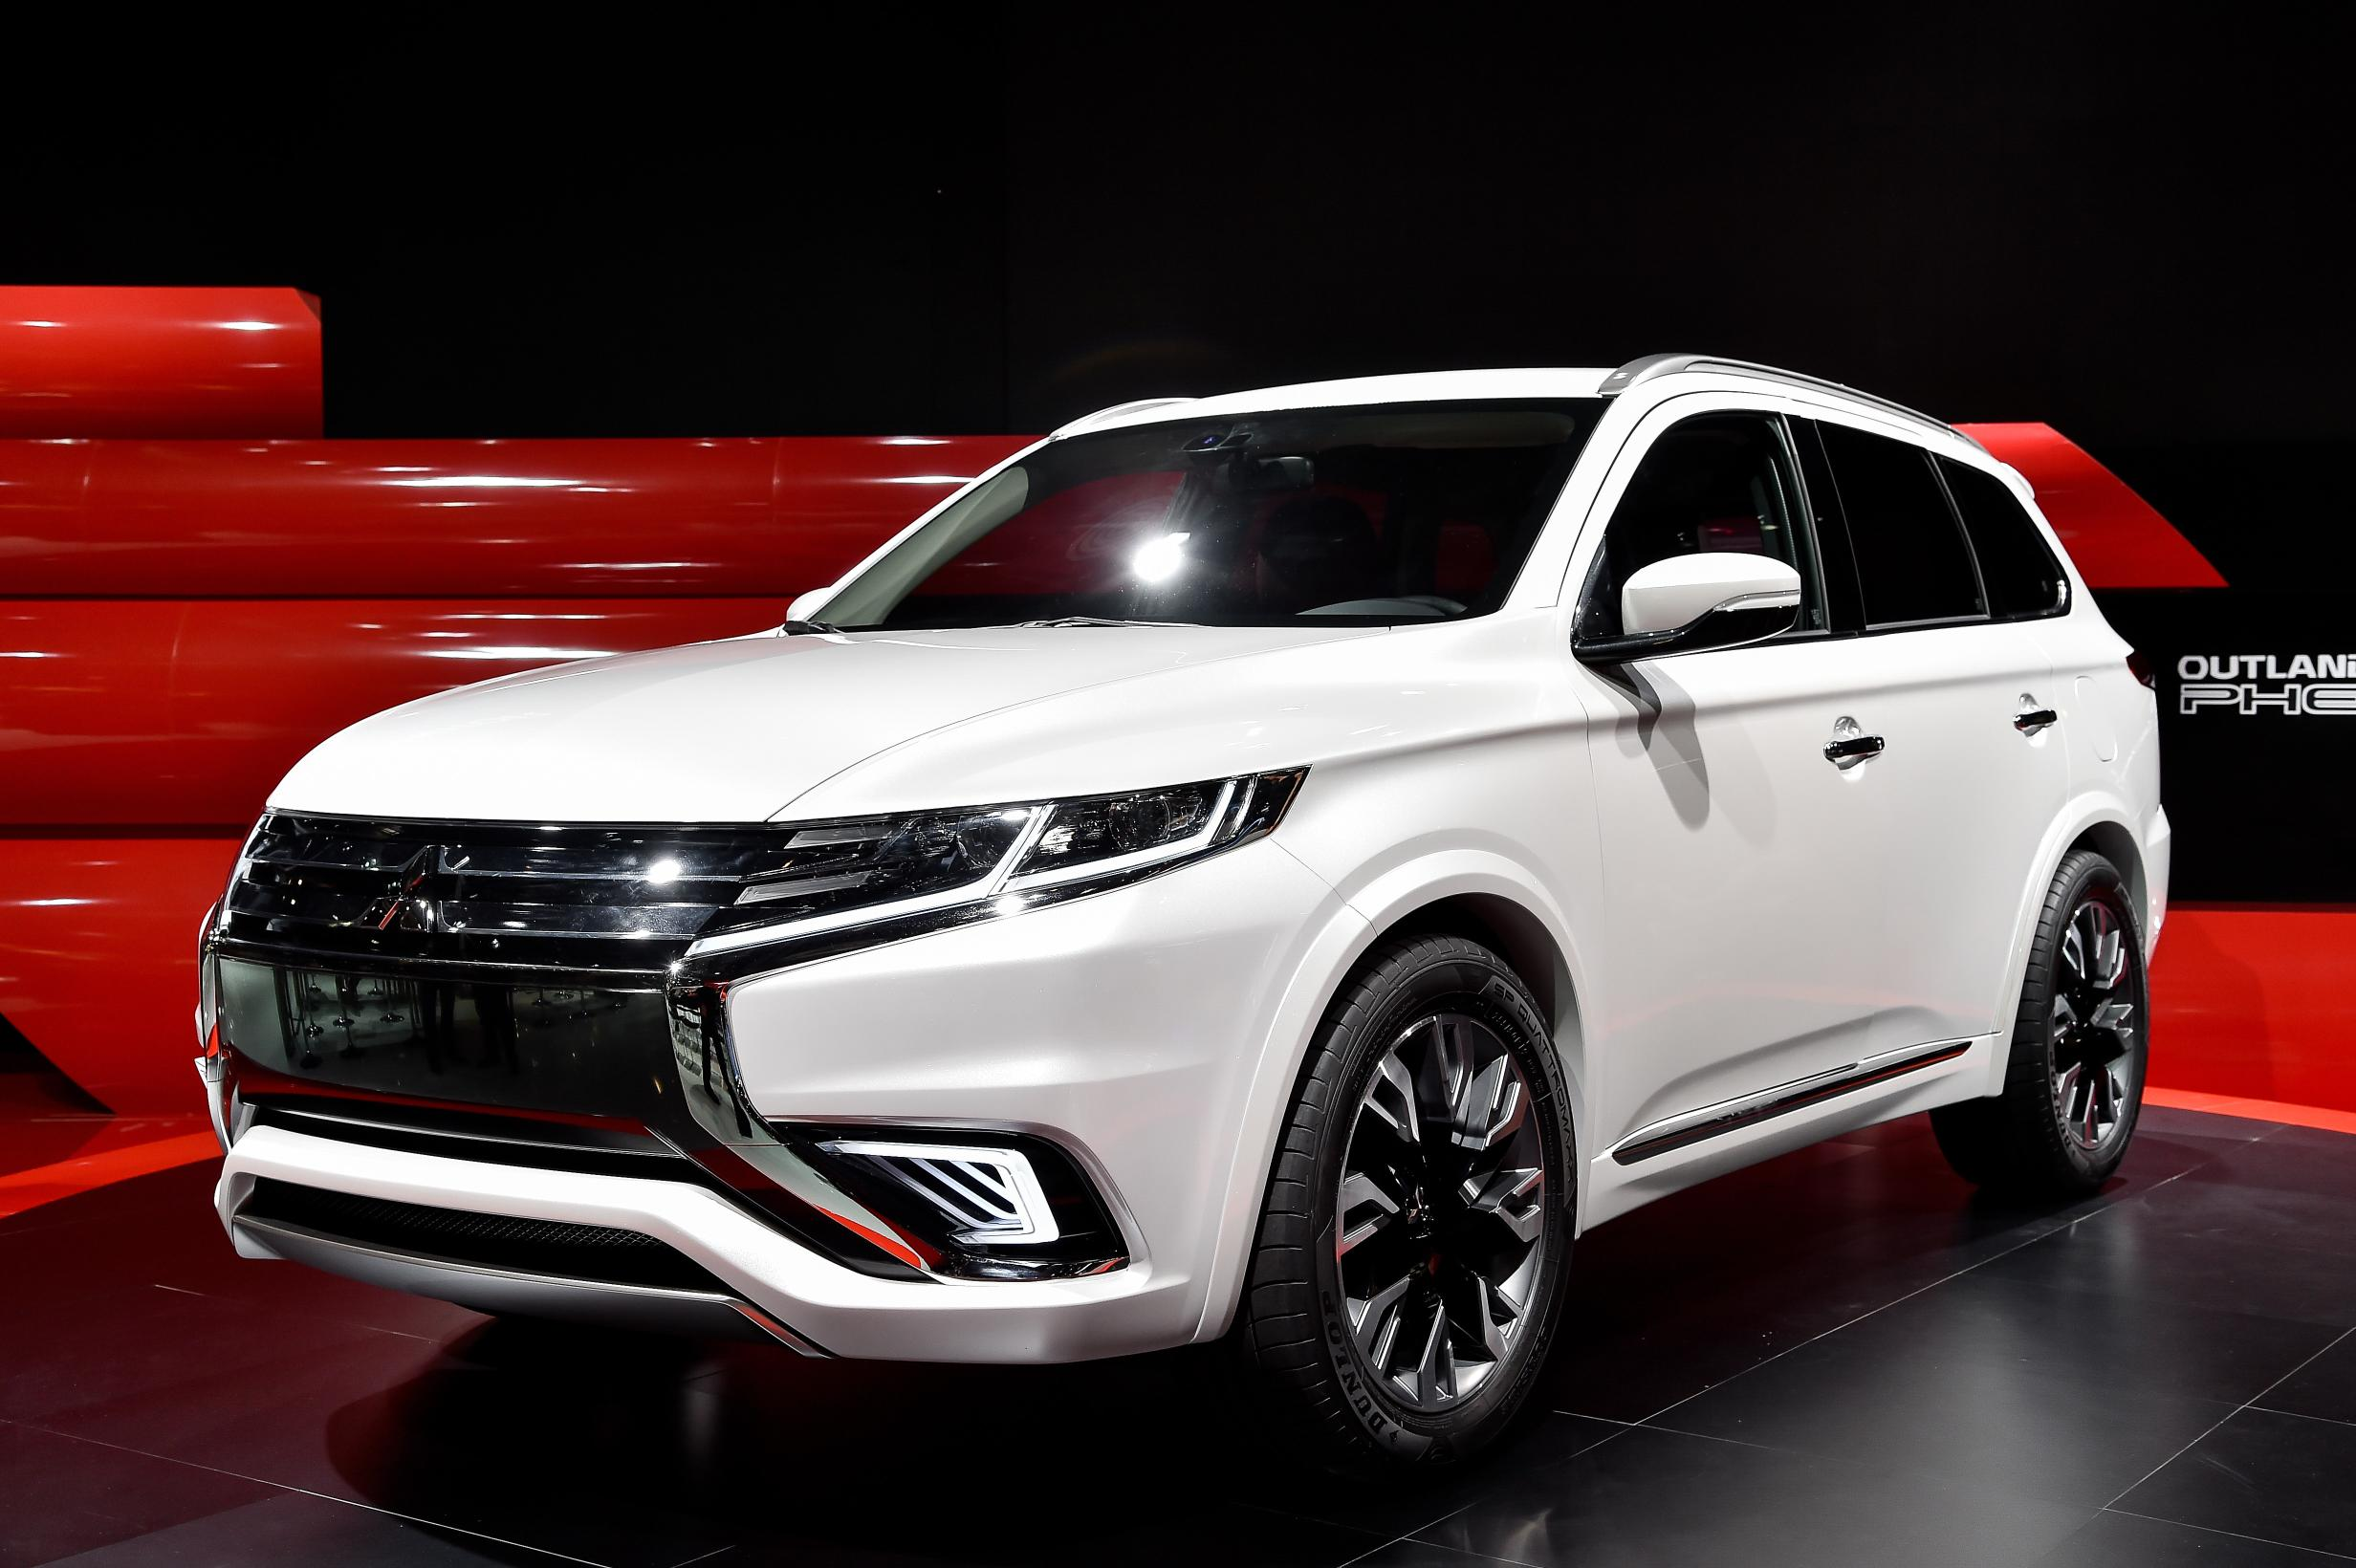 2016 Mitsubishi Outlander Facelift Spied Ahead of New York Auto Show Debut – Photo Gallery ...